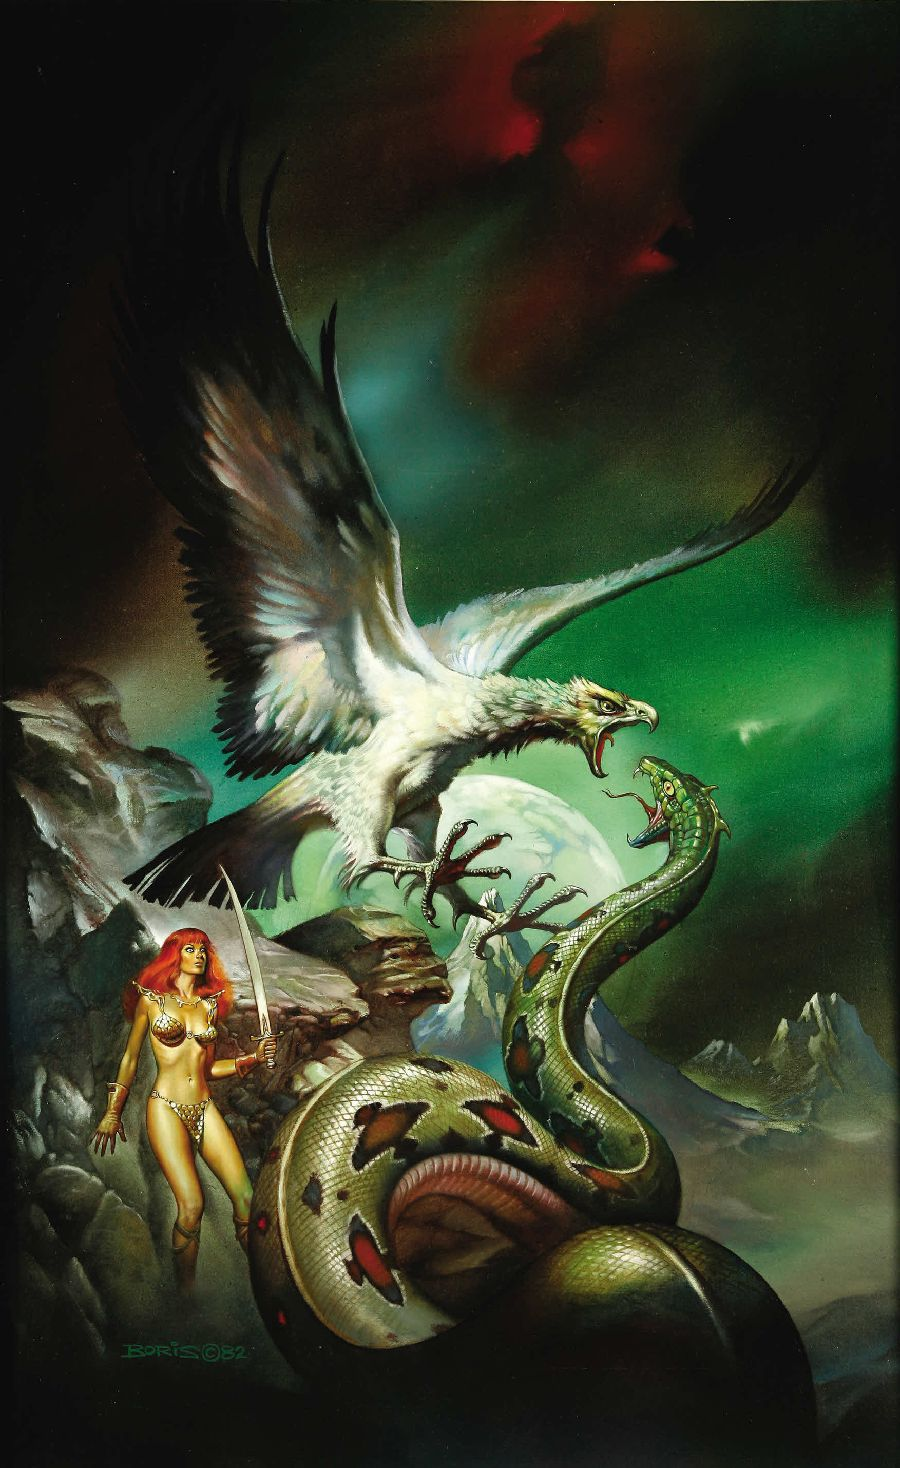 """Cover art for """"Red Sonja, no. 5: Against the Prince of Hell"""" paperback book"""